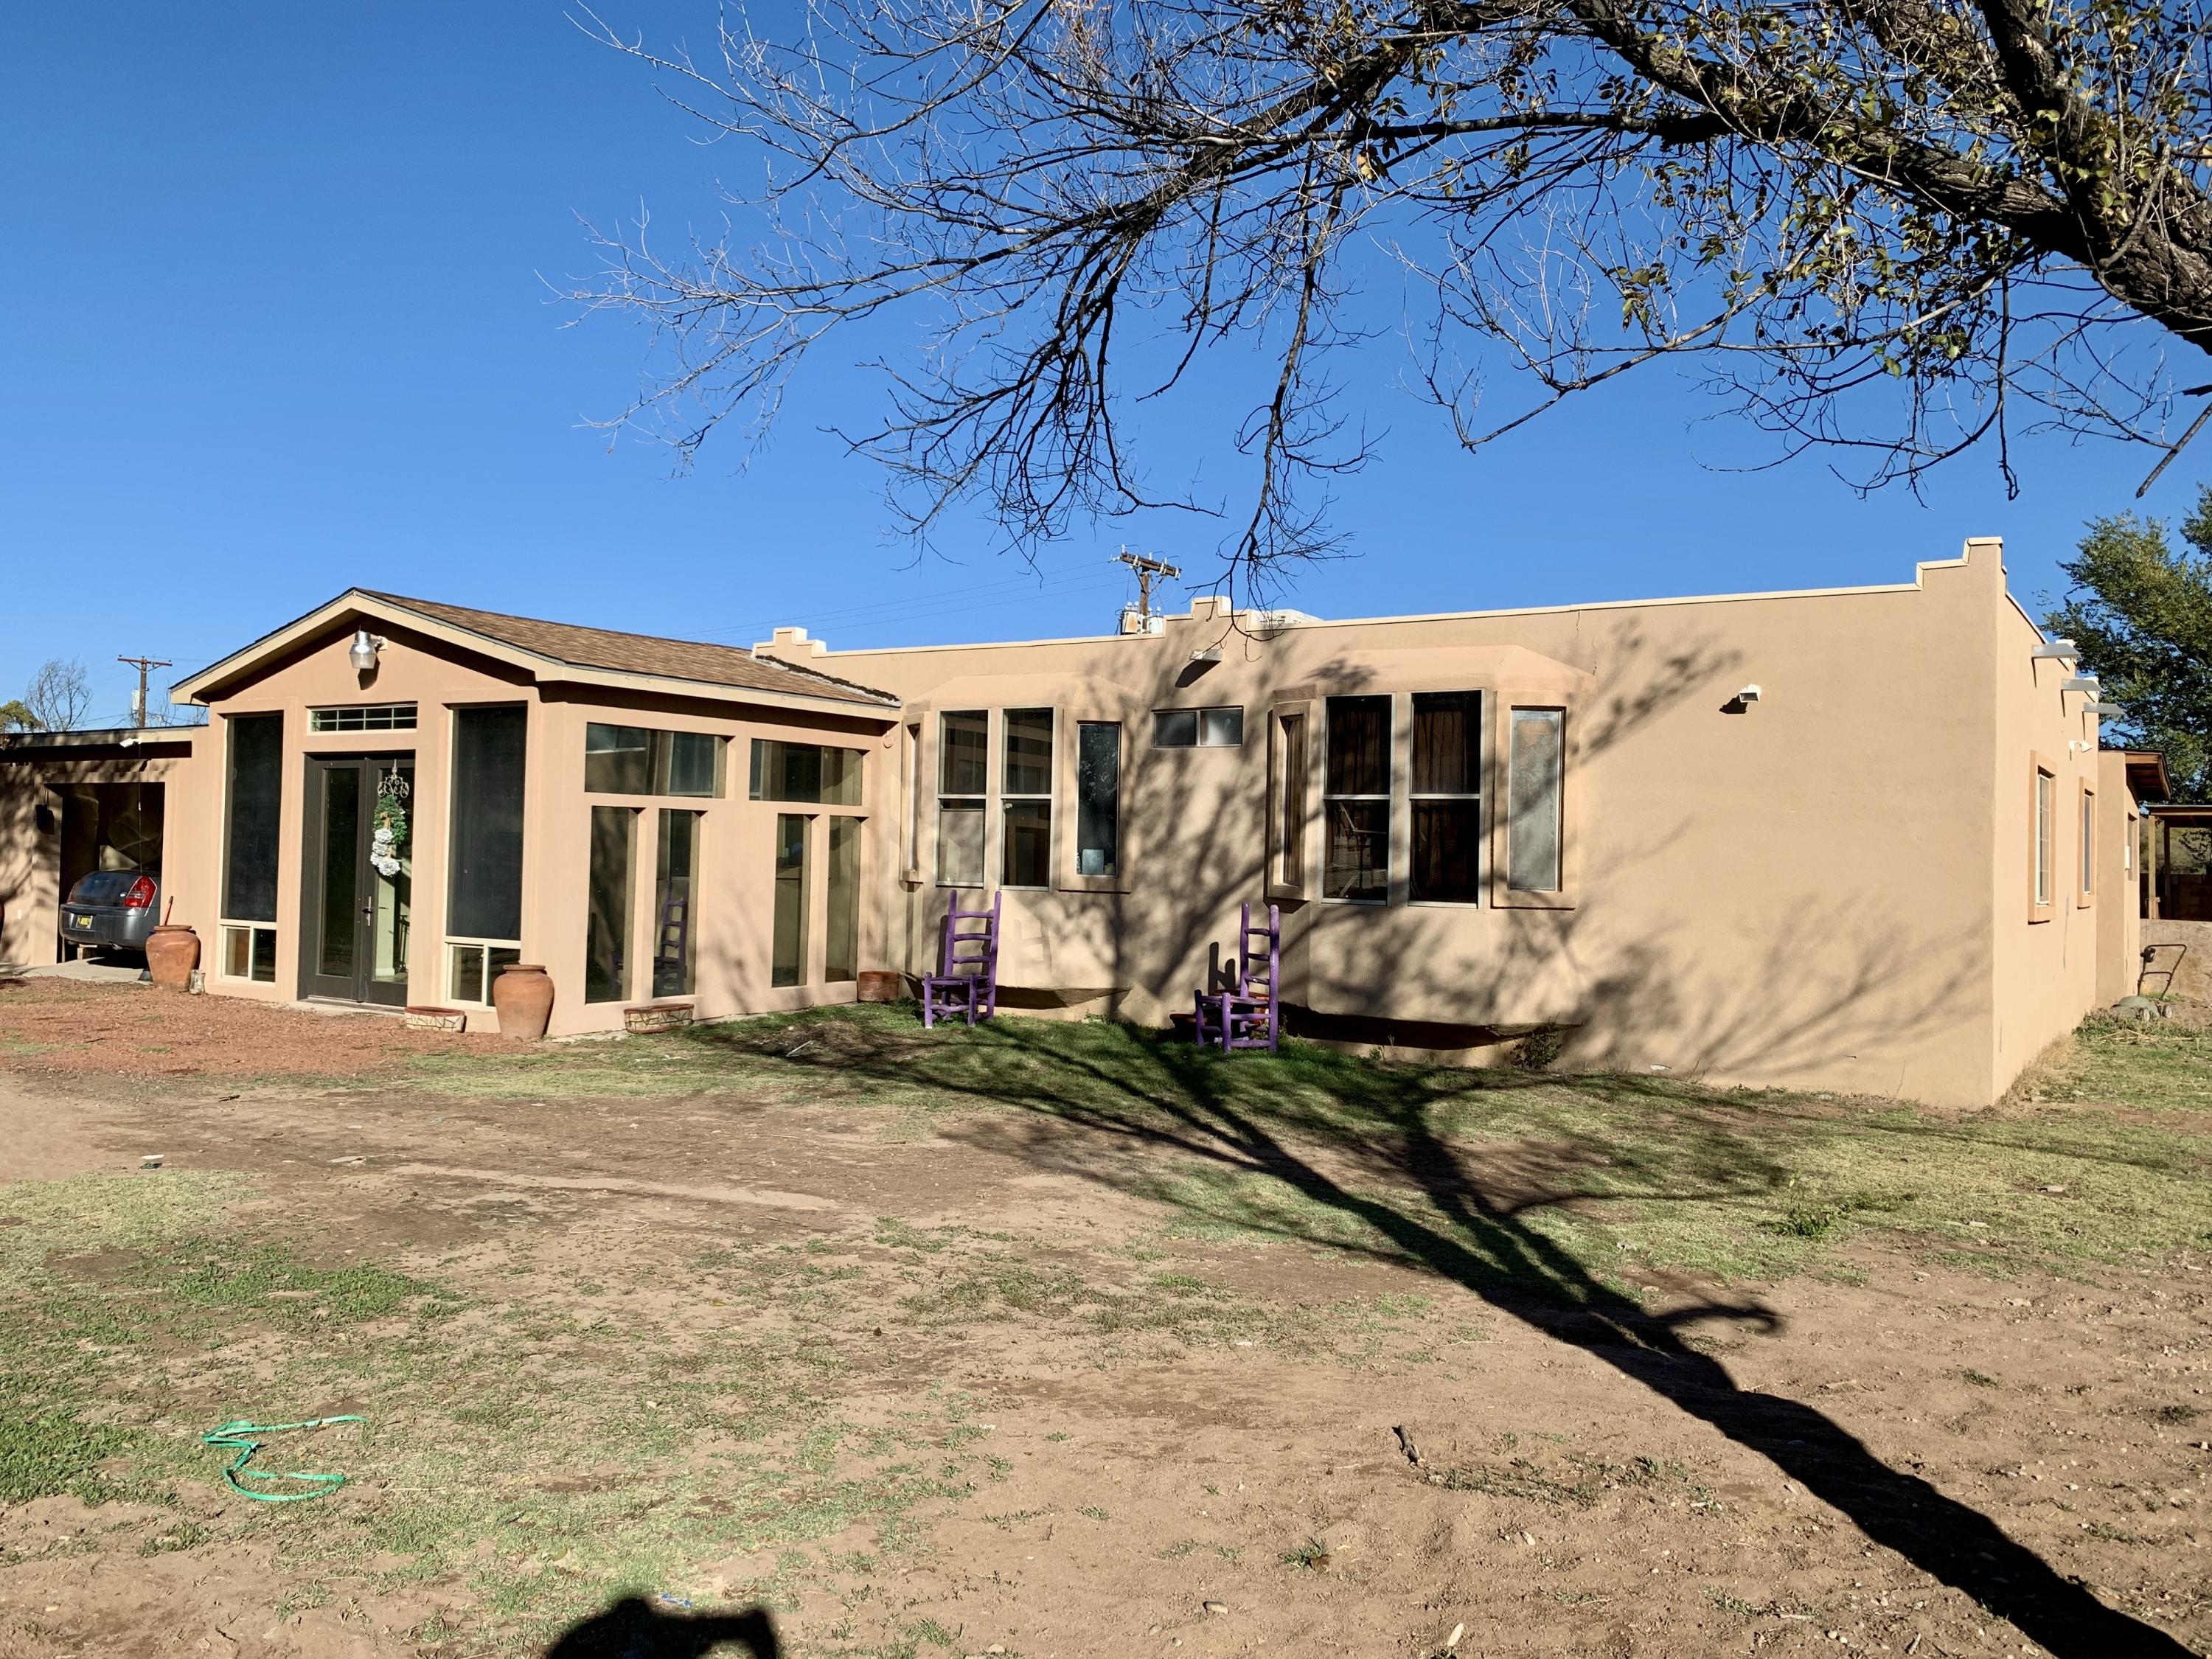 Half Acre Property, 3 bedroom 2 Bath, 2 are Masters.  2 Living Room.  Huge Sun Room.  Come view Today.  Covid Instruction in Place.